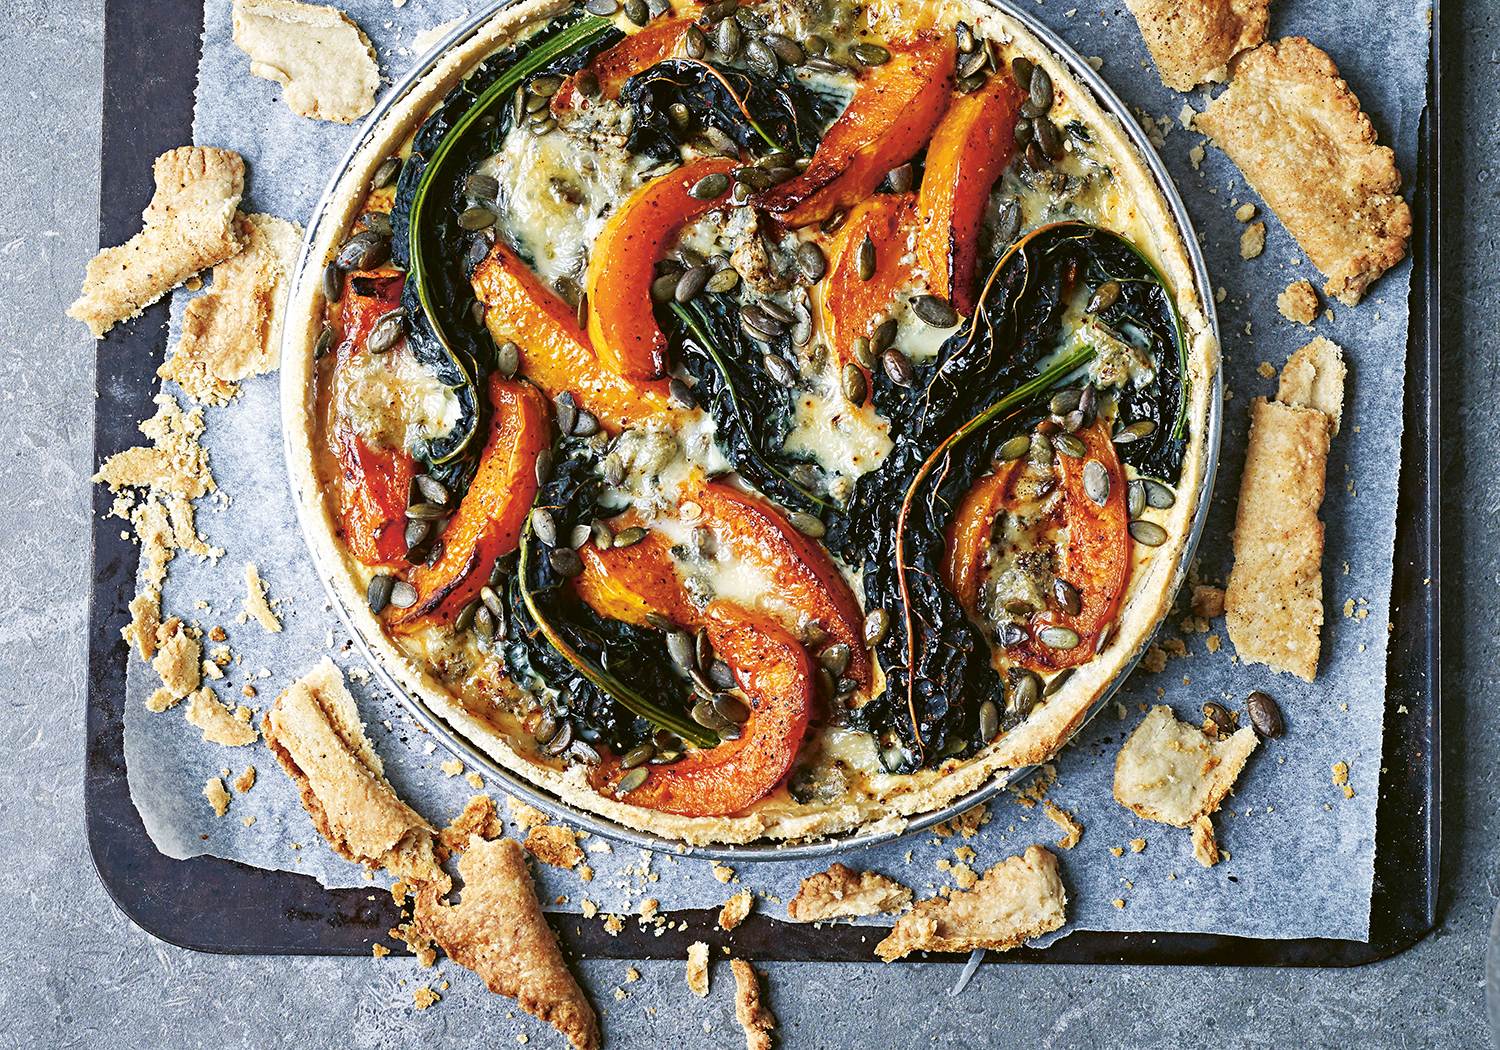 Recipe excerpted with permission fromPies and Tarts by Annie Rigg, published by Quadrille (October 2018), RRP $19.99 hardcover. <br> Photo: Nassima Rothacker